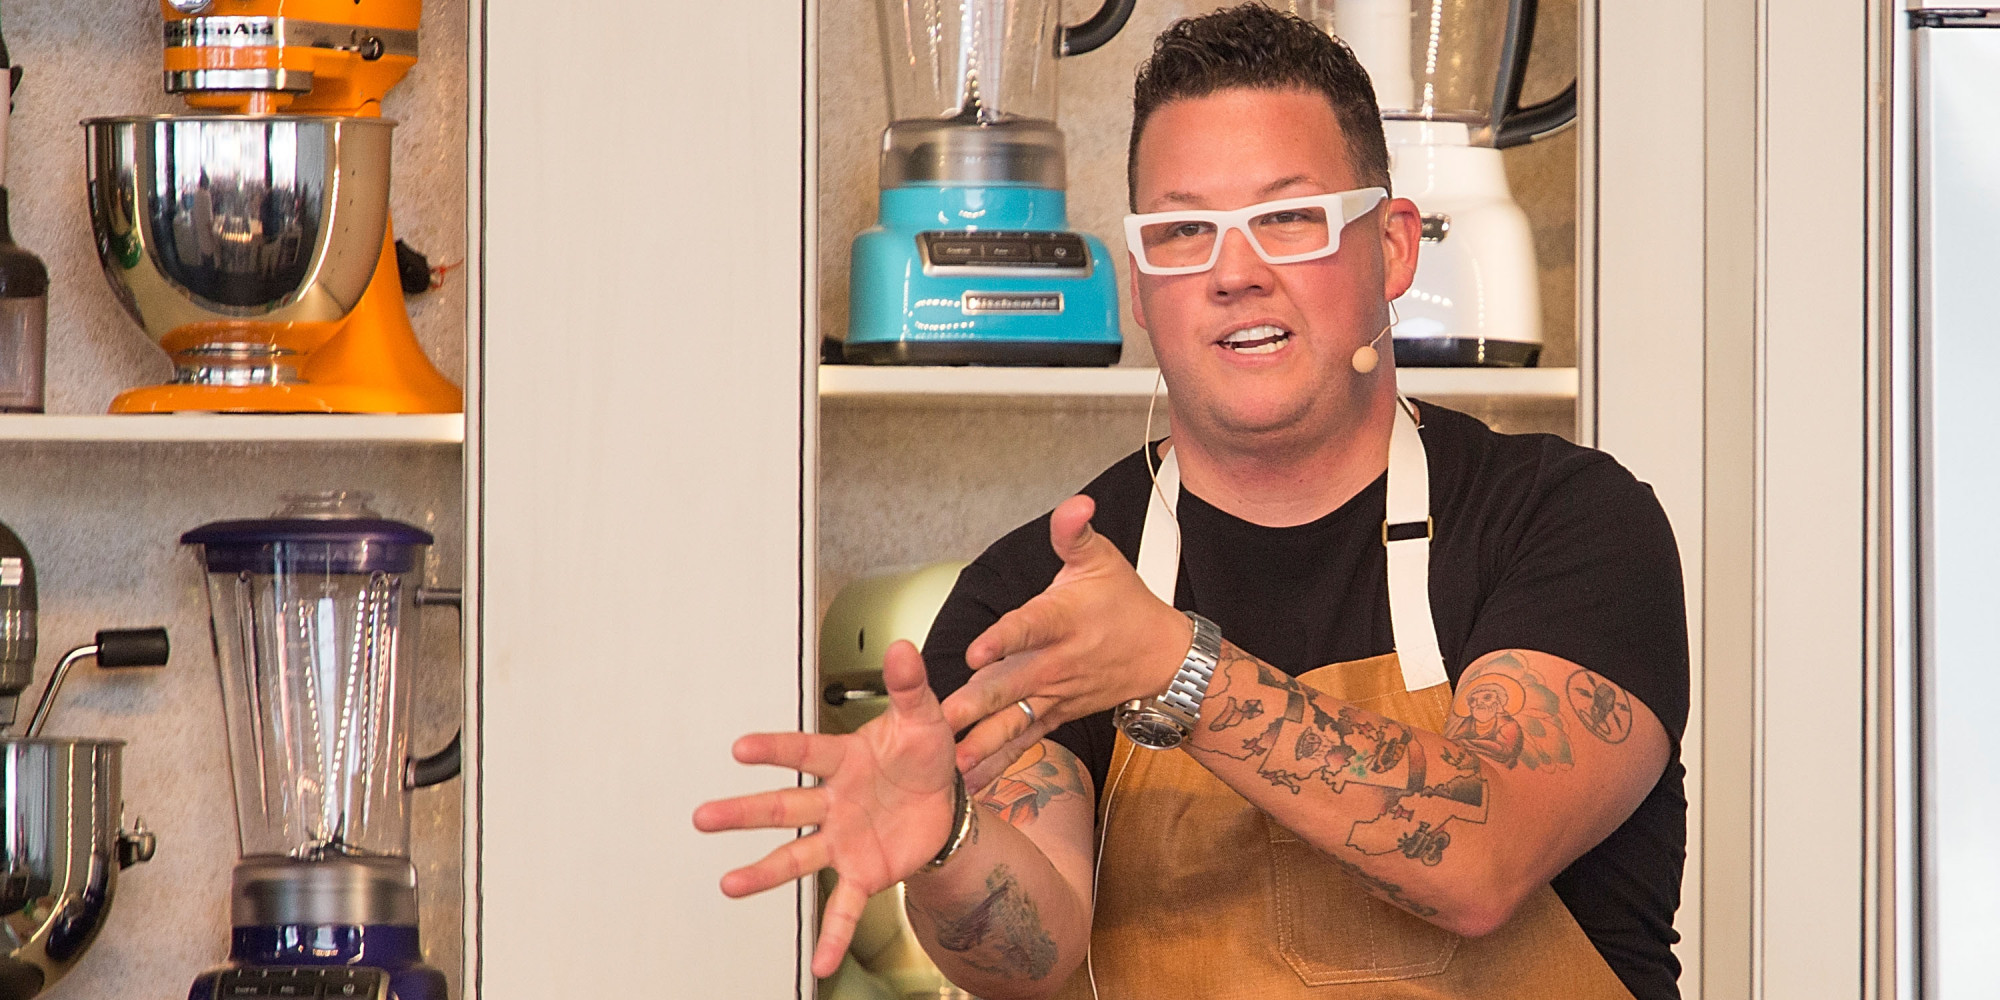 ... Elliot Talks 'MasterChef' Season 5 And Weight Loss: Big Changes Ahead